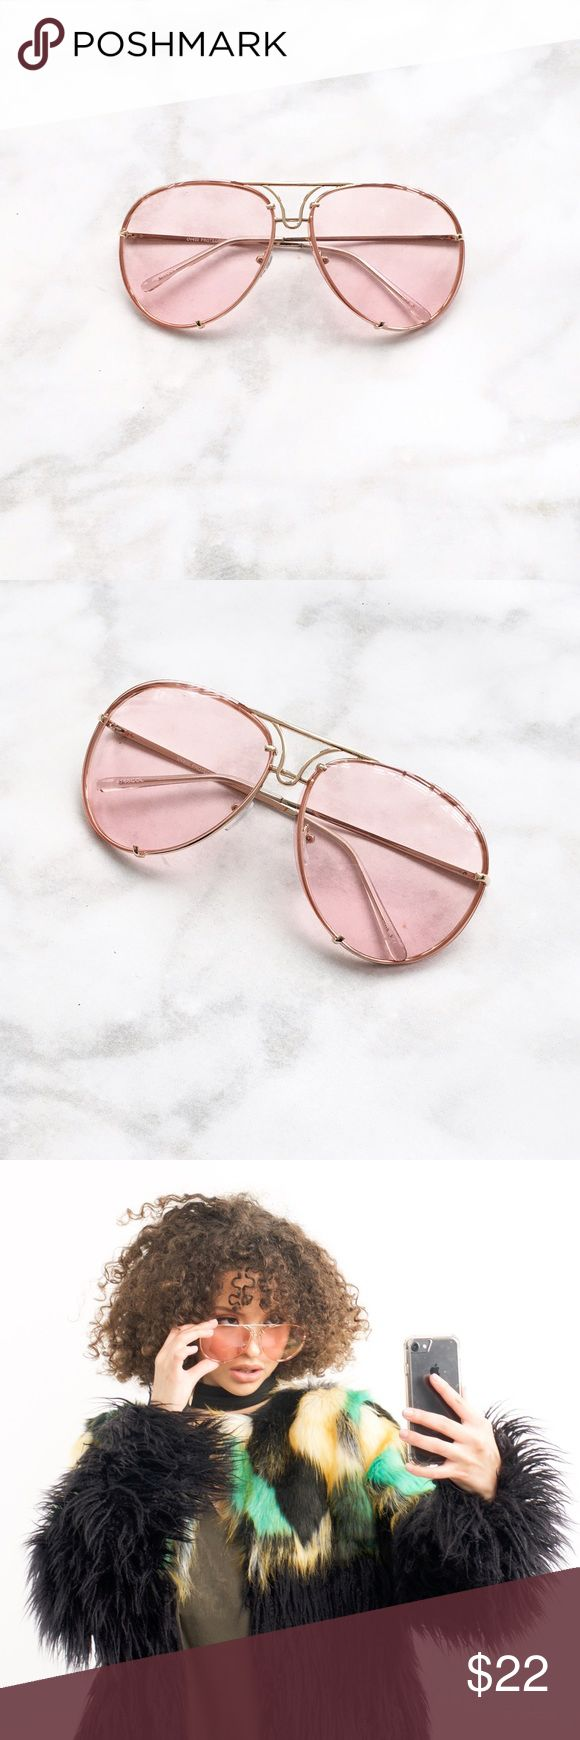 PINK LENS OVERSIZED AVIATOR SUNGLASSES ✨RESTOCK ALERT! PRICE FIRM!! Clear pink colored tinted lens Gold Trim Aviator style Oversized fit Approximate measurements:  Full width 5.75 in Individual lens size: 2.5in W, 2.25 in L Side bar 5.5 in.  THIS LISTING IS FOR 1 PINK OVERSIZED AVIATOR SUNGLASSES. Style Link Miami Accessories Sunglasses